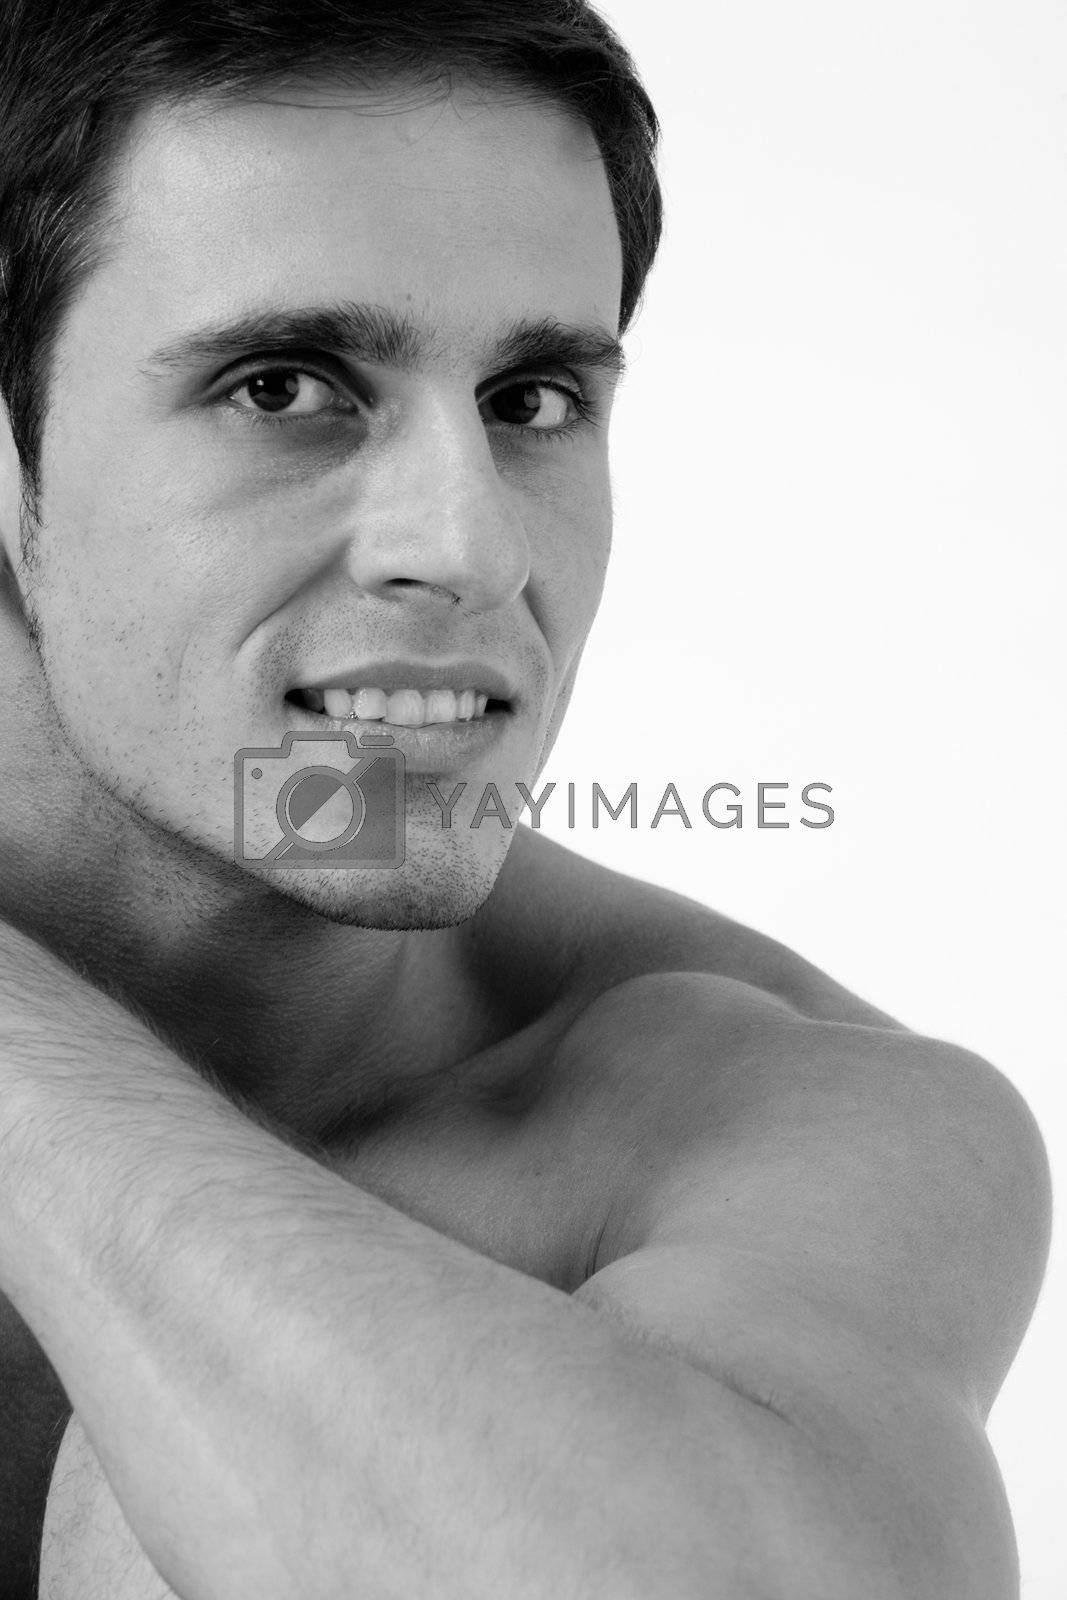 Young man portrait in the studio on a white background